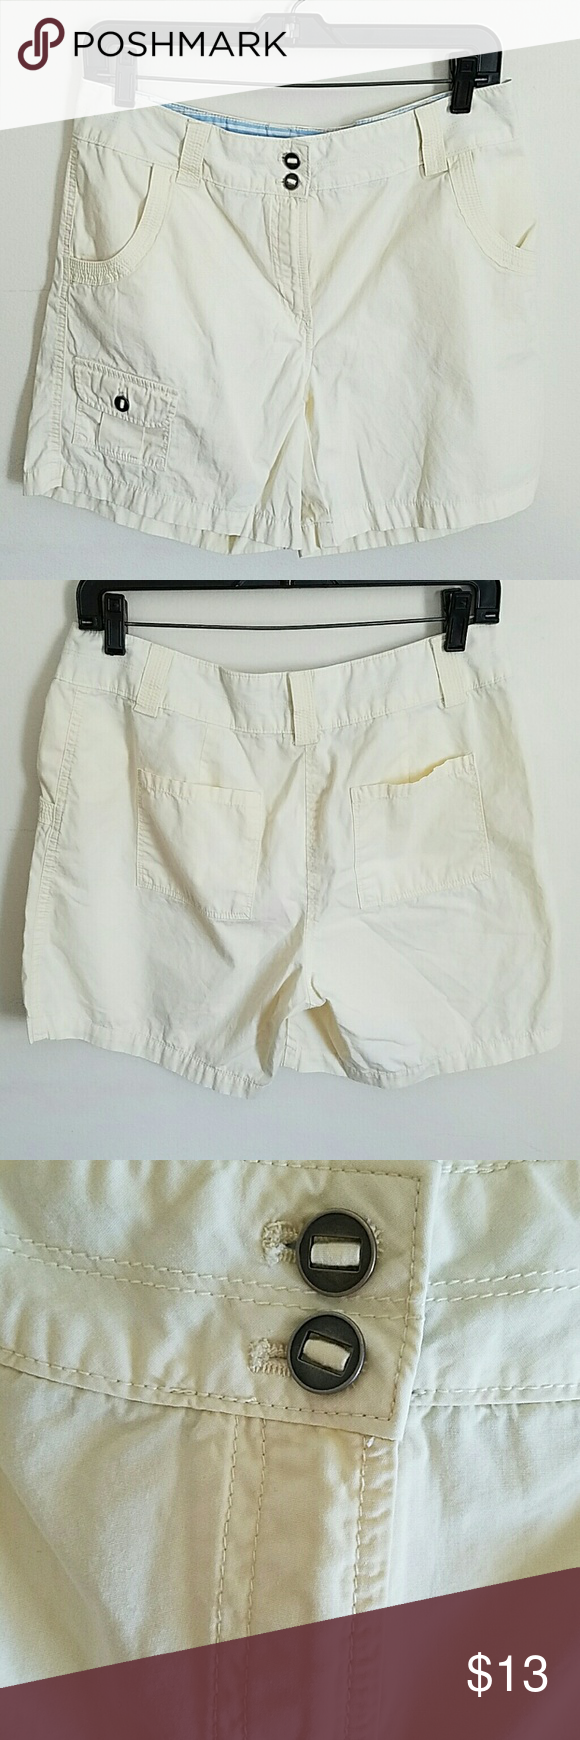 """Van Heusen 100% Cotton Shorts Van Heusen 100% Cotton Shorts. Size 6. Inseam is Approximately 5 1/2"""". These are a Beautiful Pale Yellow. Great Condition. Van Heusen Shorts"""